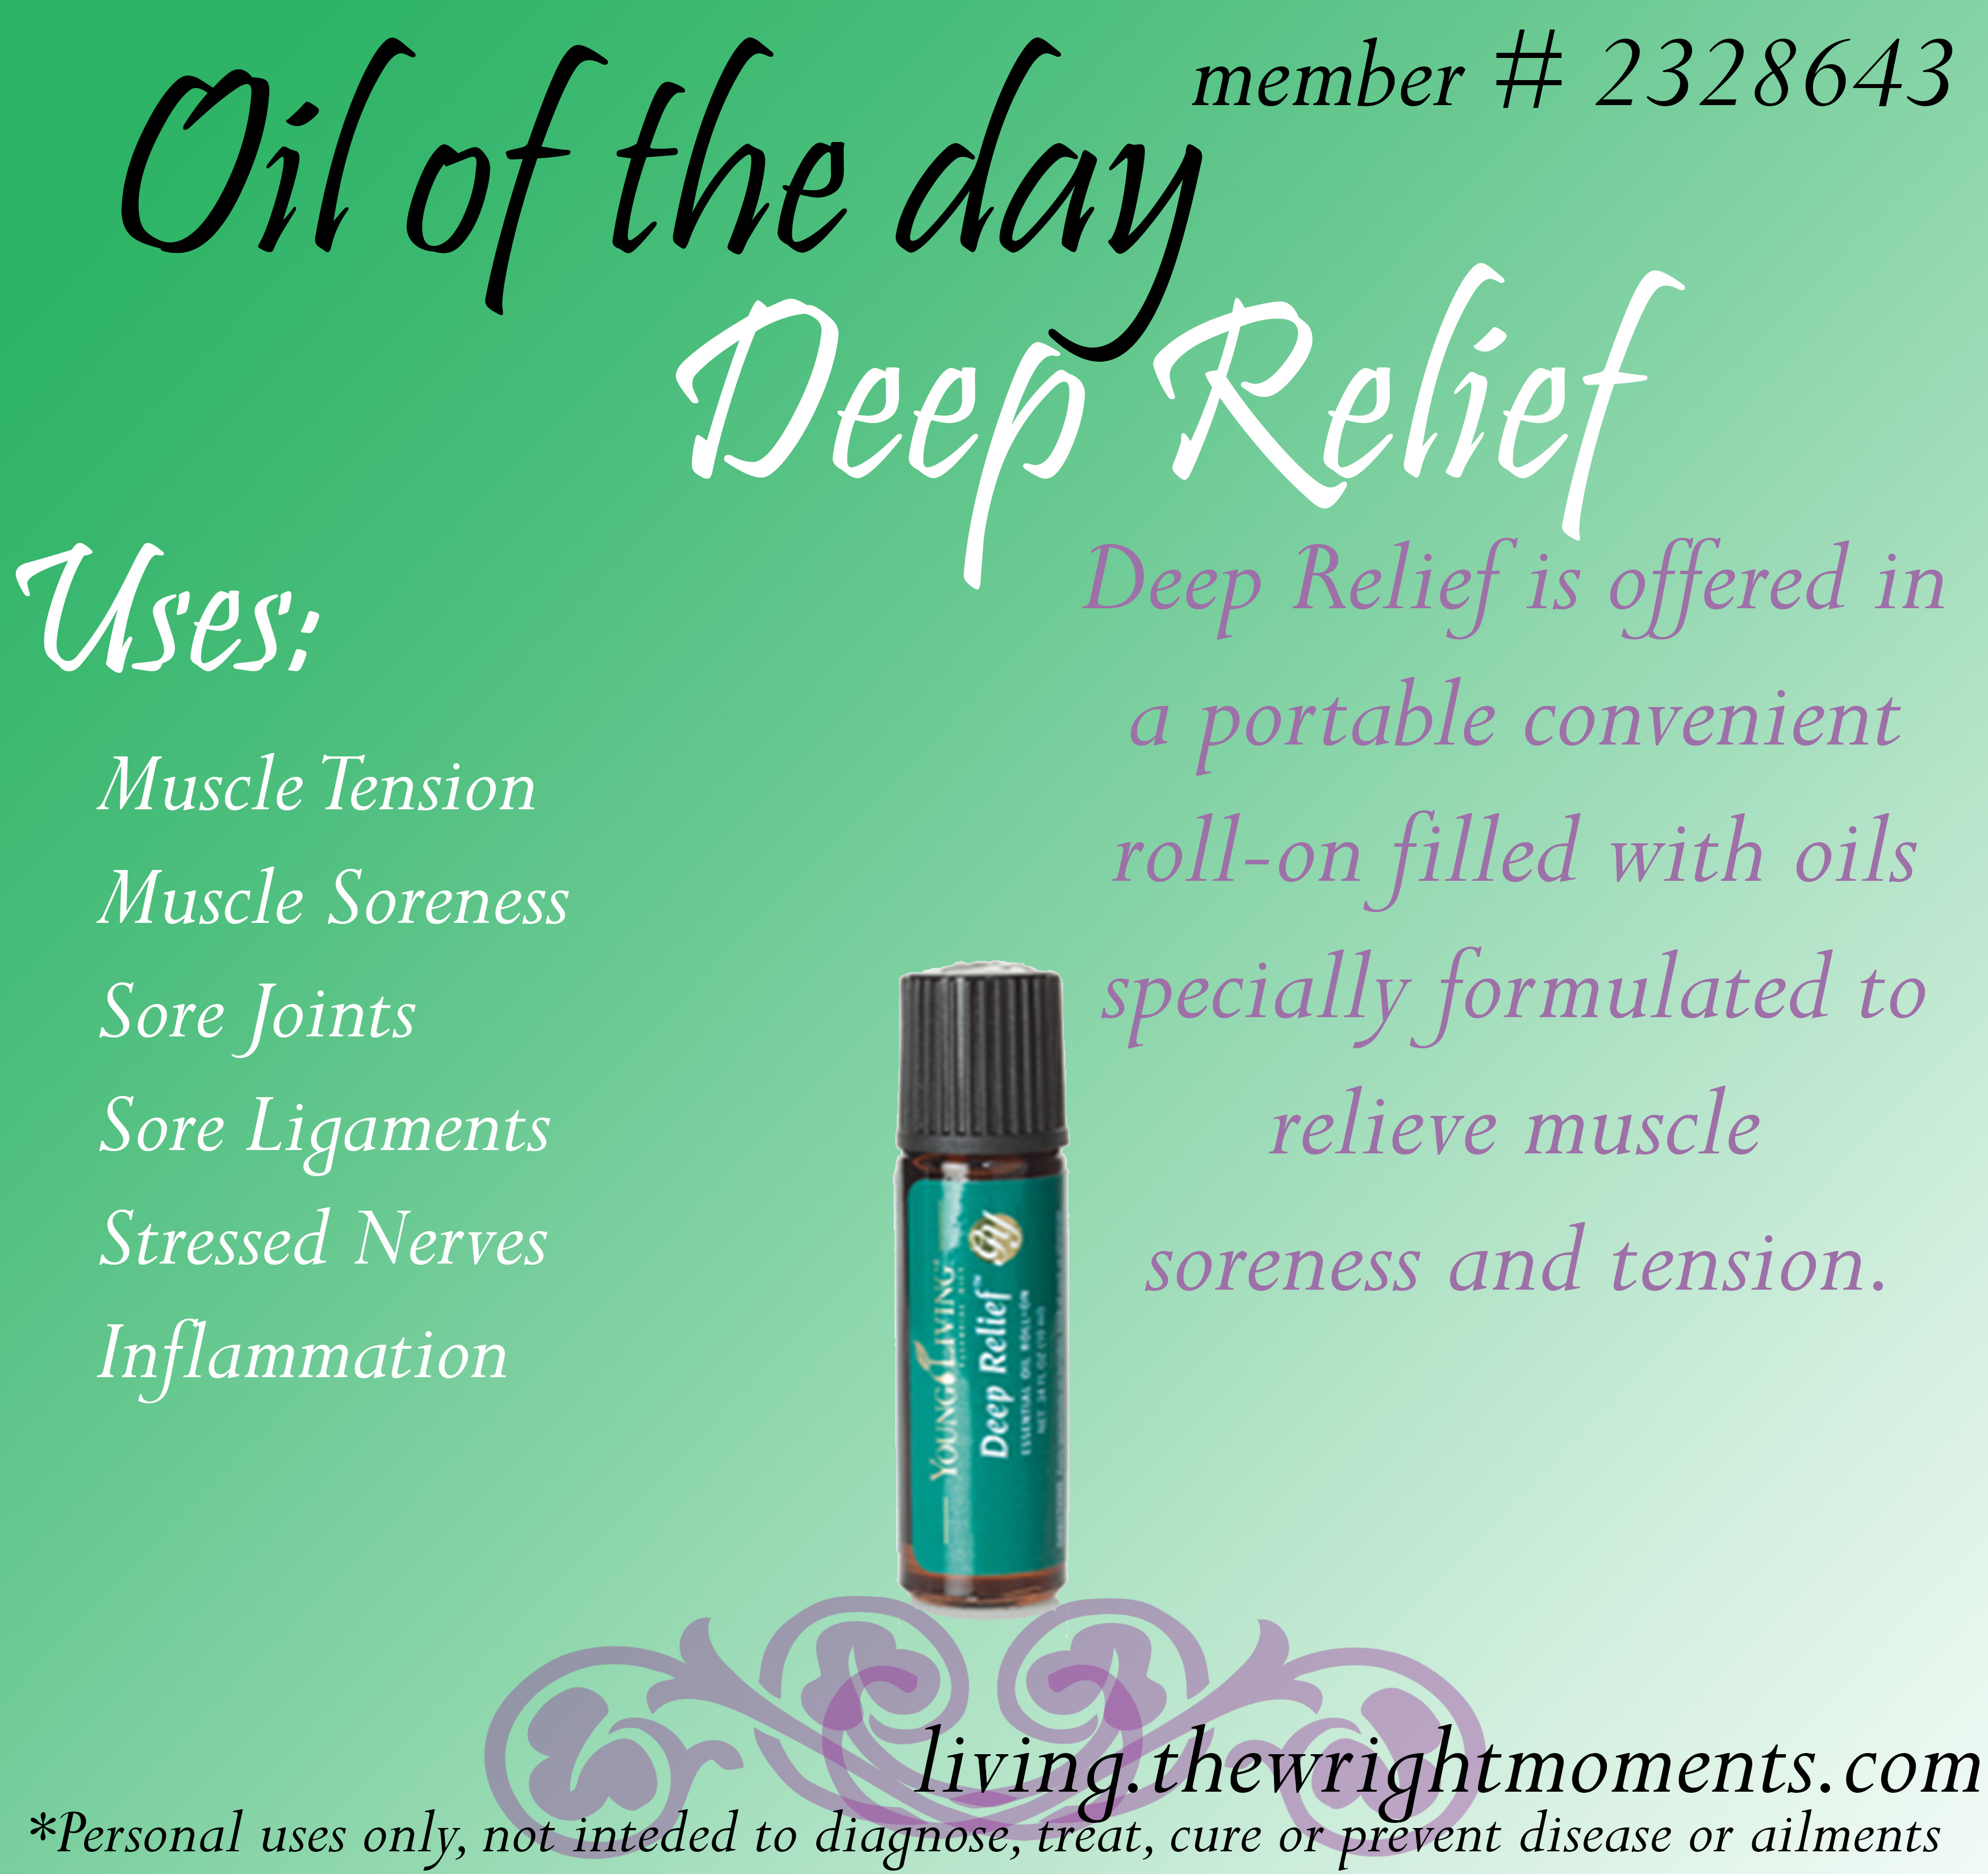 oil of the day - deep relief